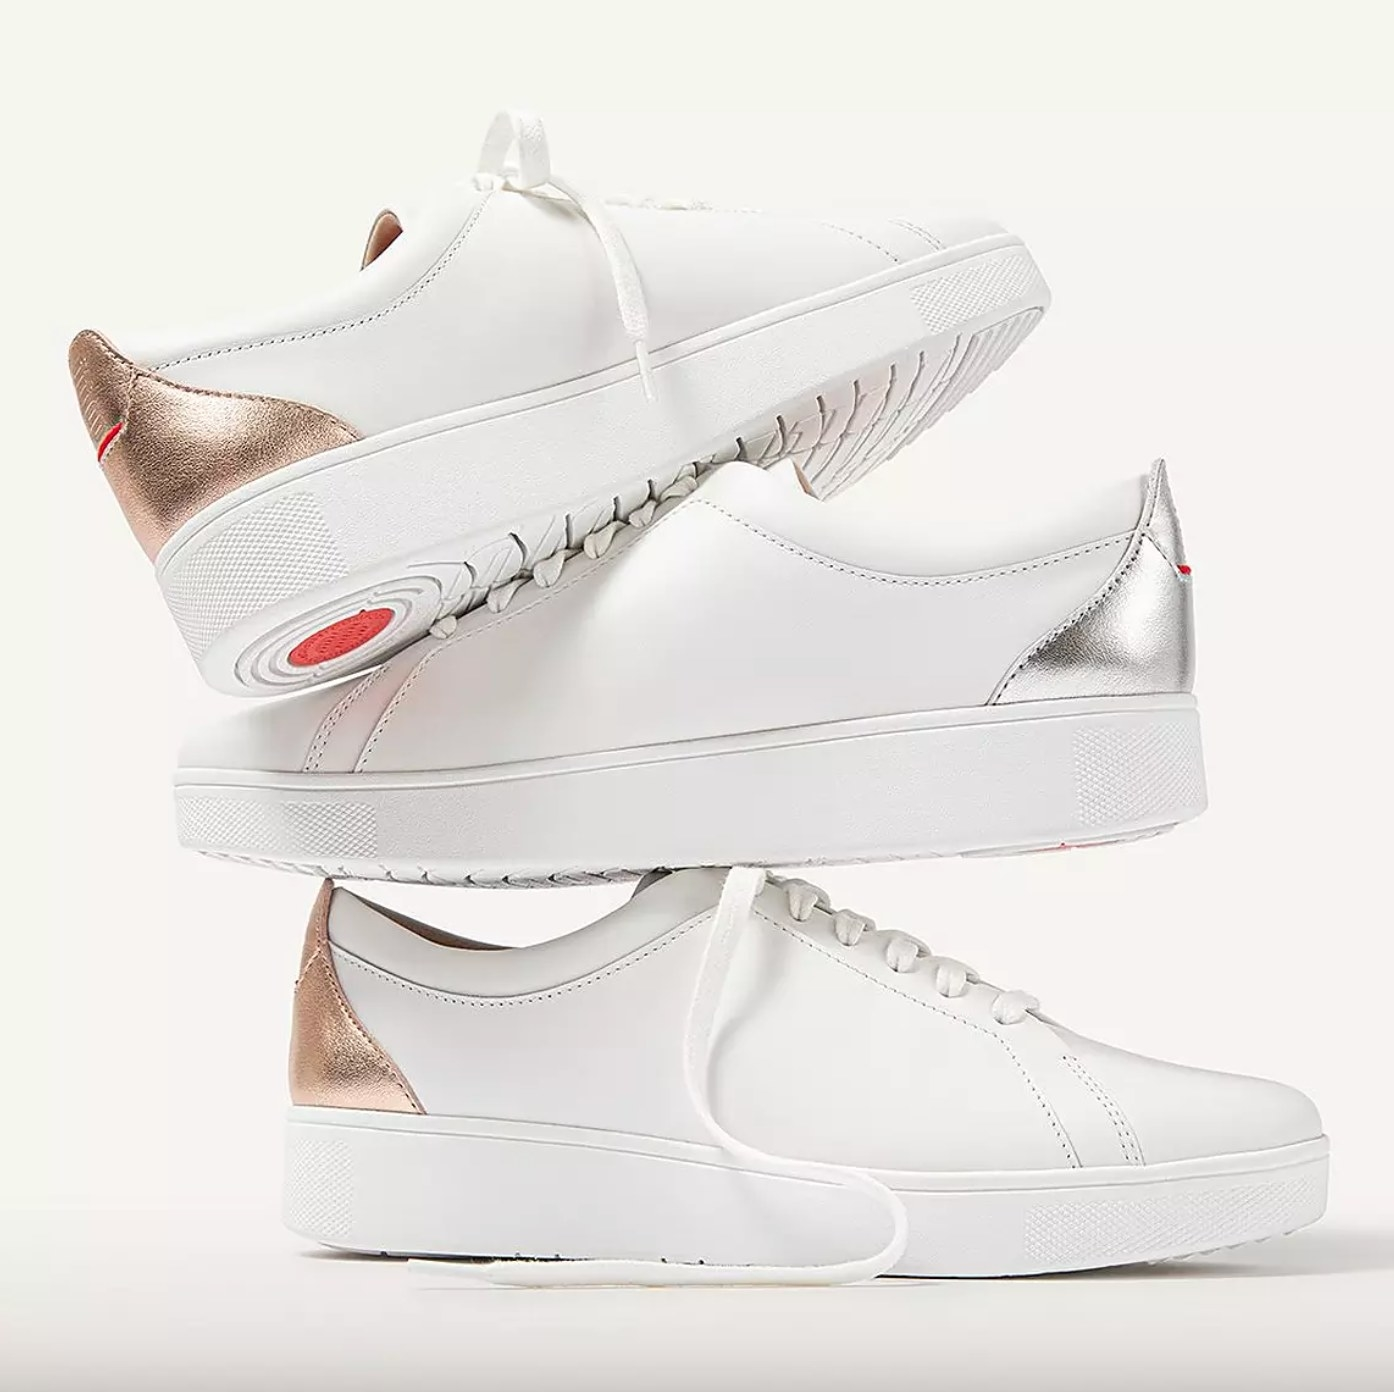 The pair of metallic backtab leather sneakers in rose gold